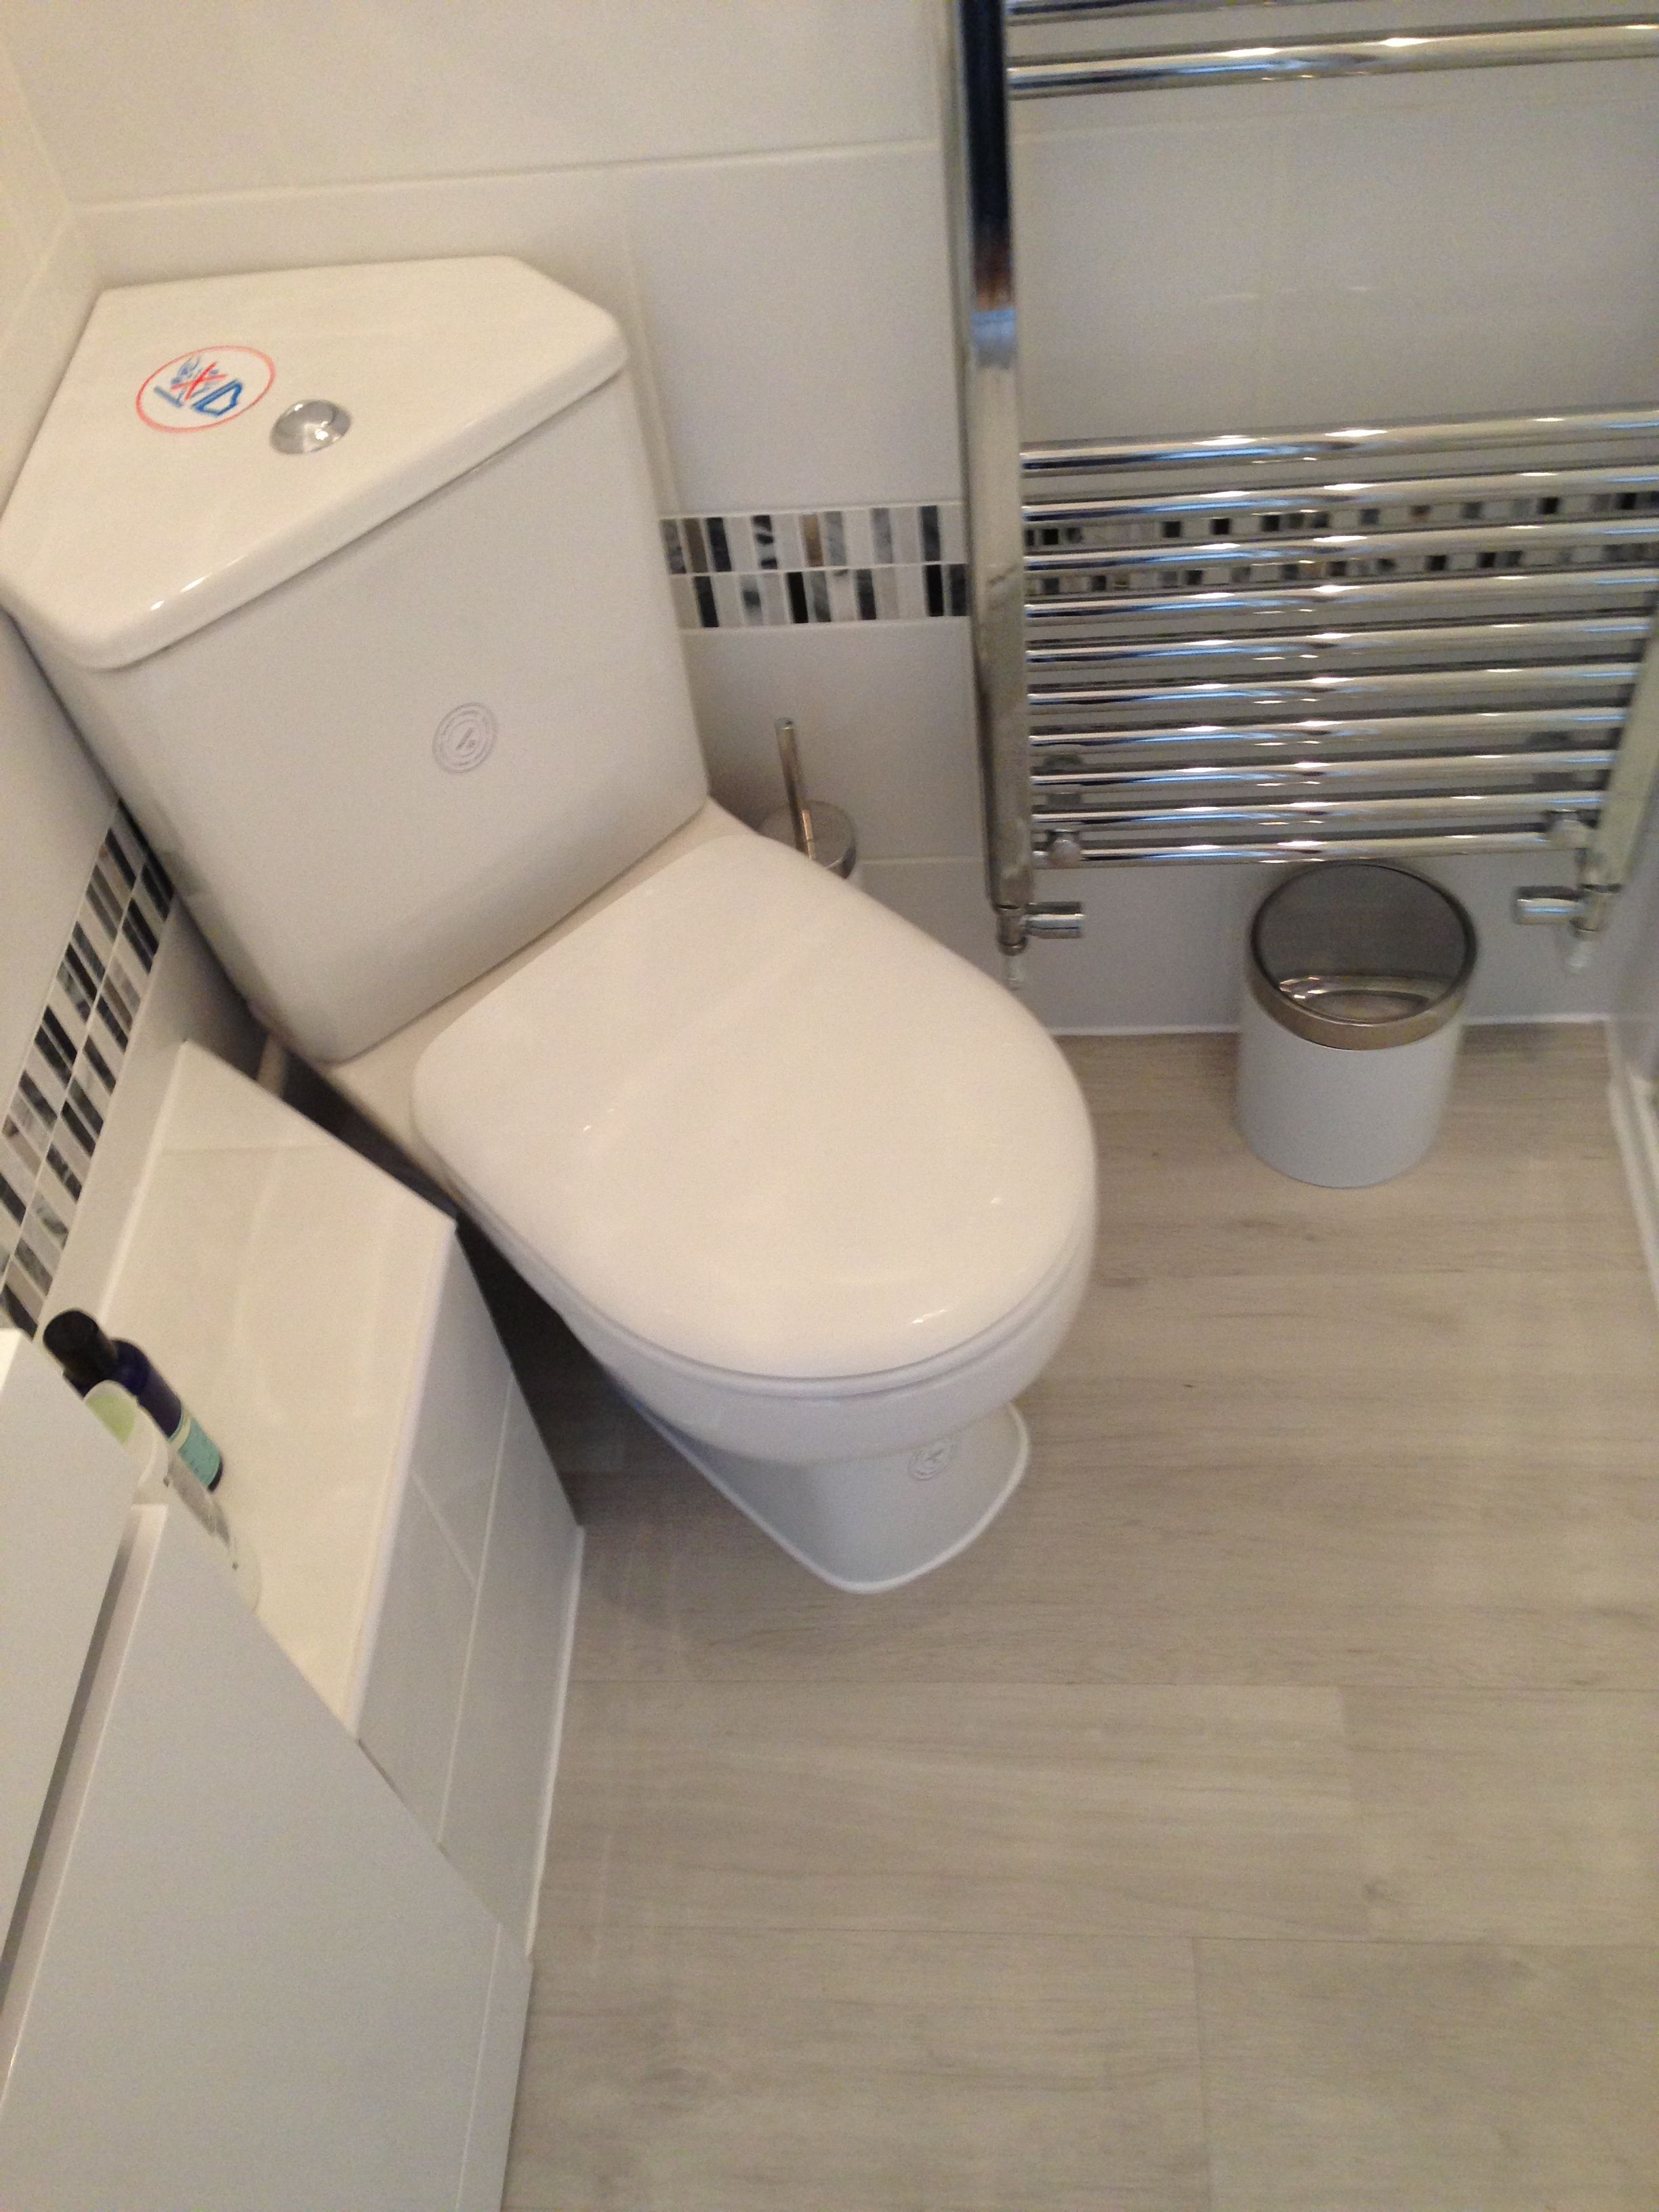 A Corner Wc With Concealed Saniflo To The Side There Is Always A Layout That Works Bathroom Installation Toilets And Sinks Corner Toilet